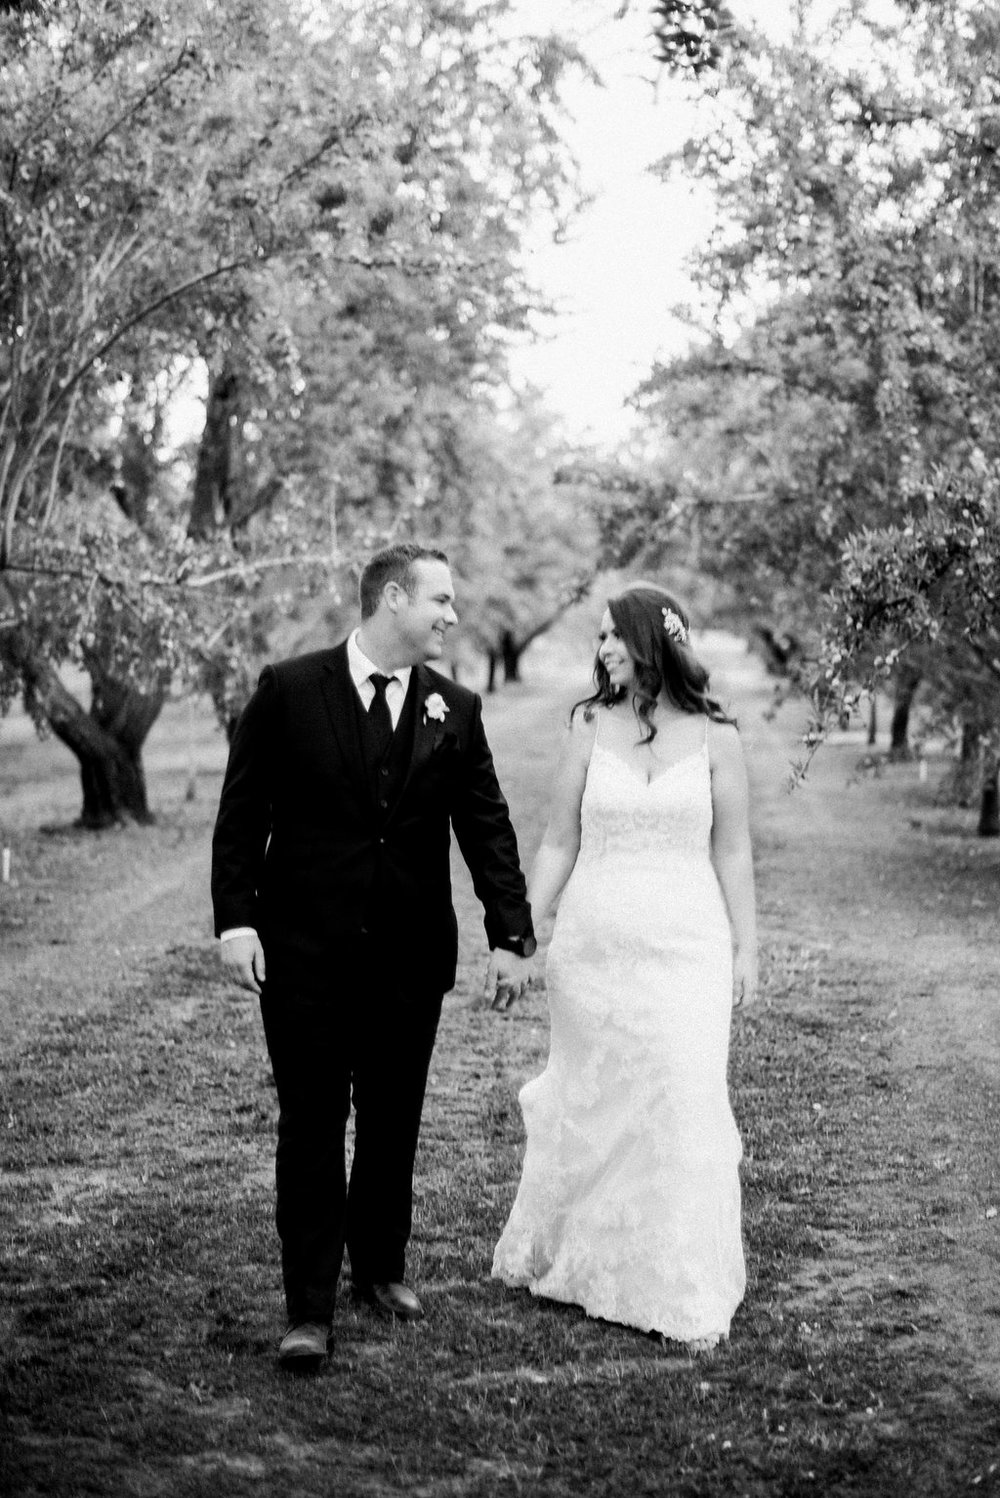 Shannon Rosan - Bride and Groom walking through almond orchard